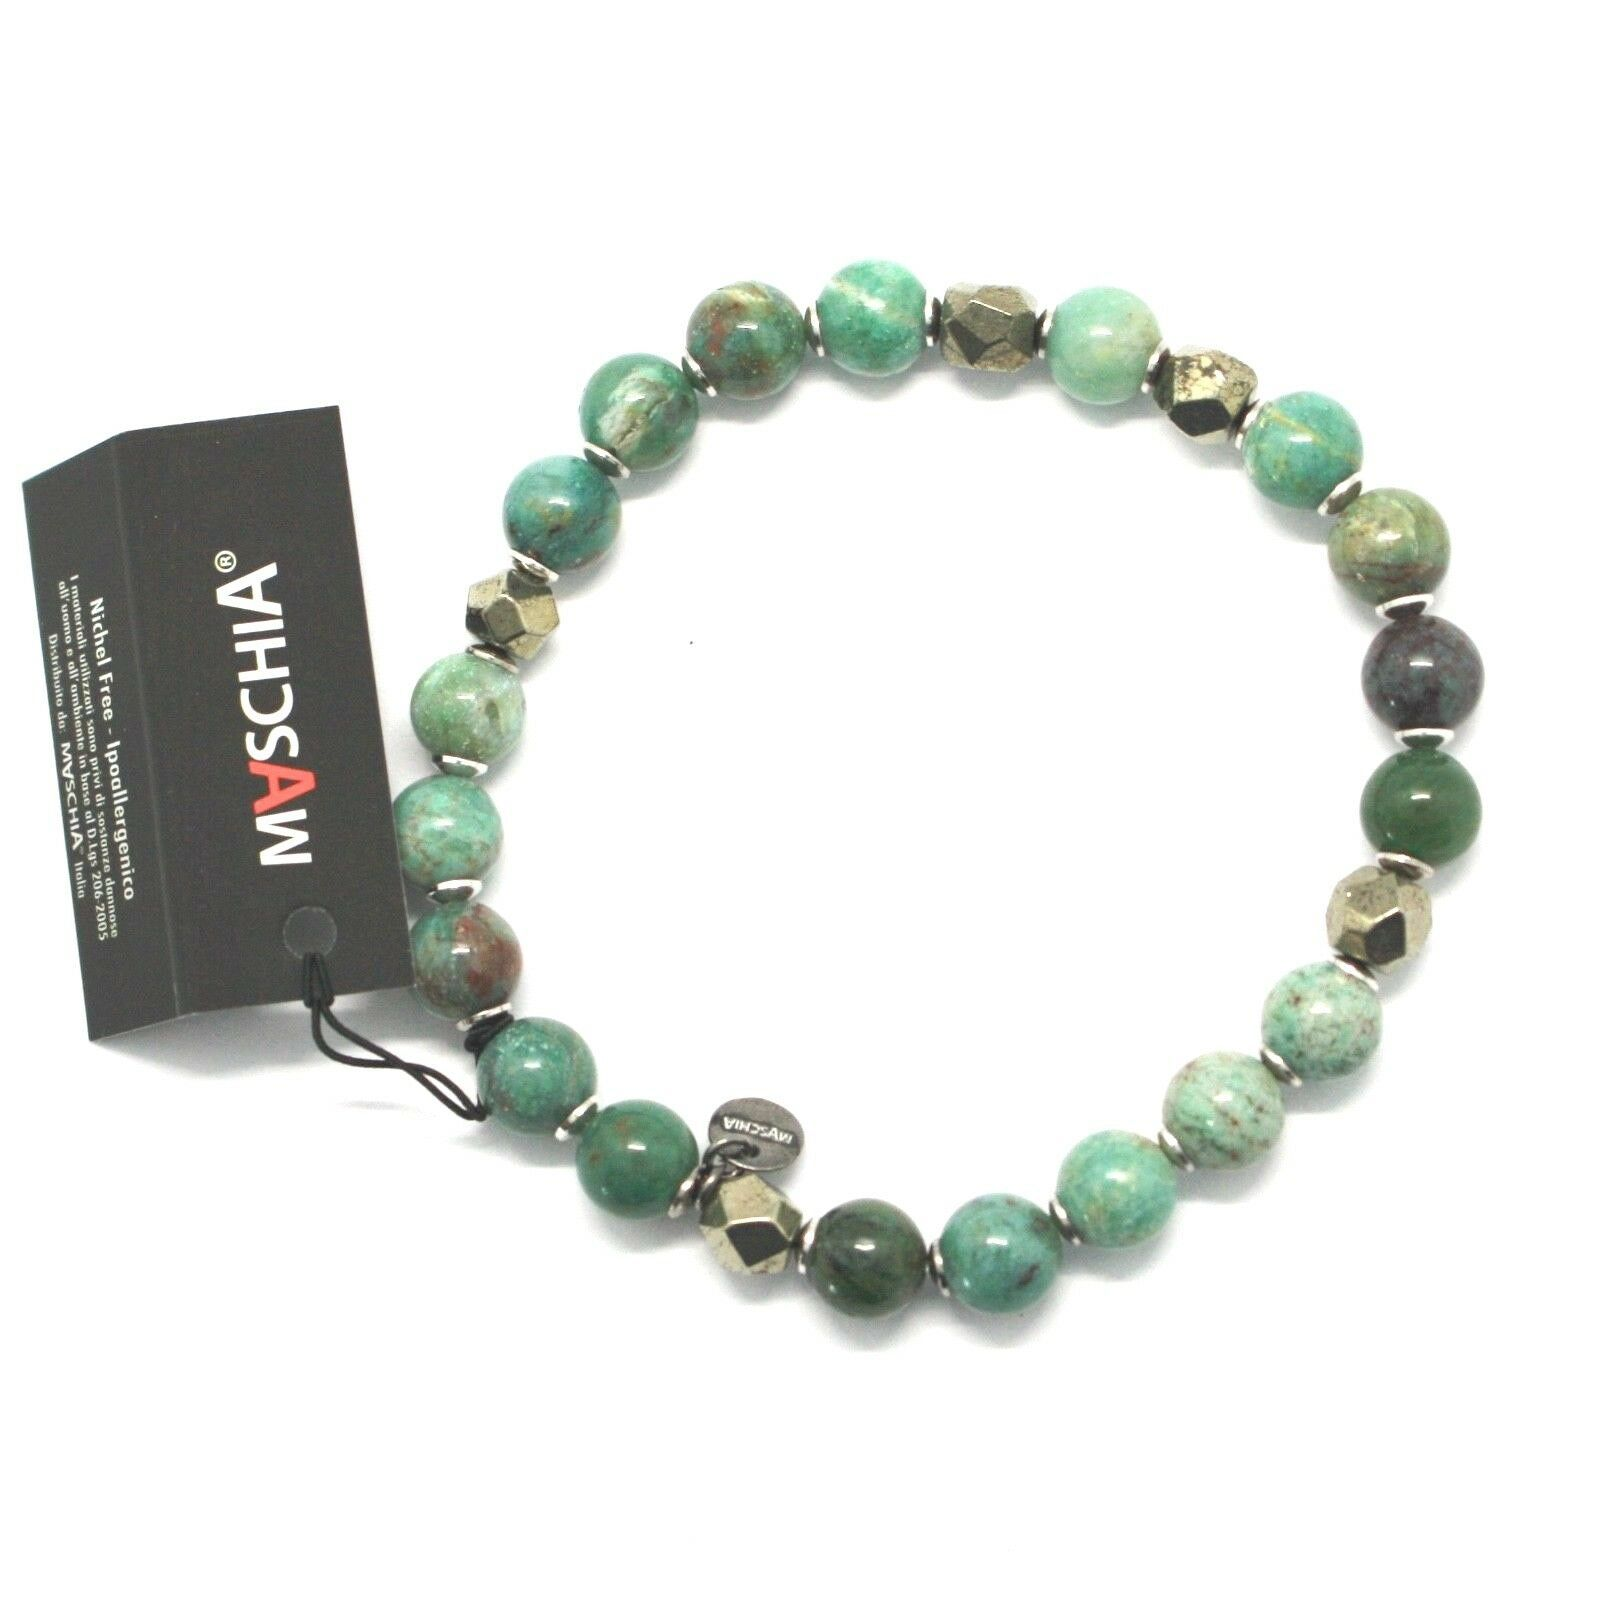 Silver 925 Bracelet with Hematite and Jasper Bbus-5 Made in Italy by Maschia